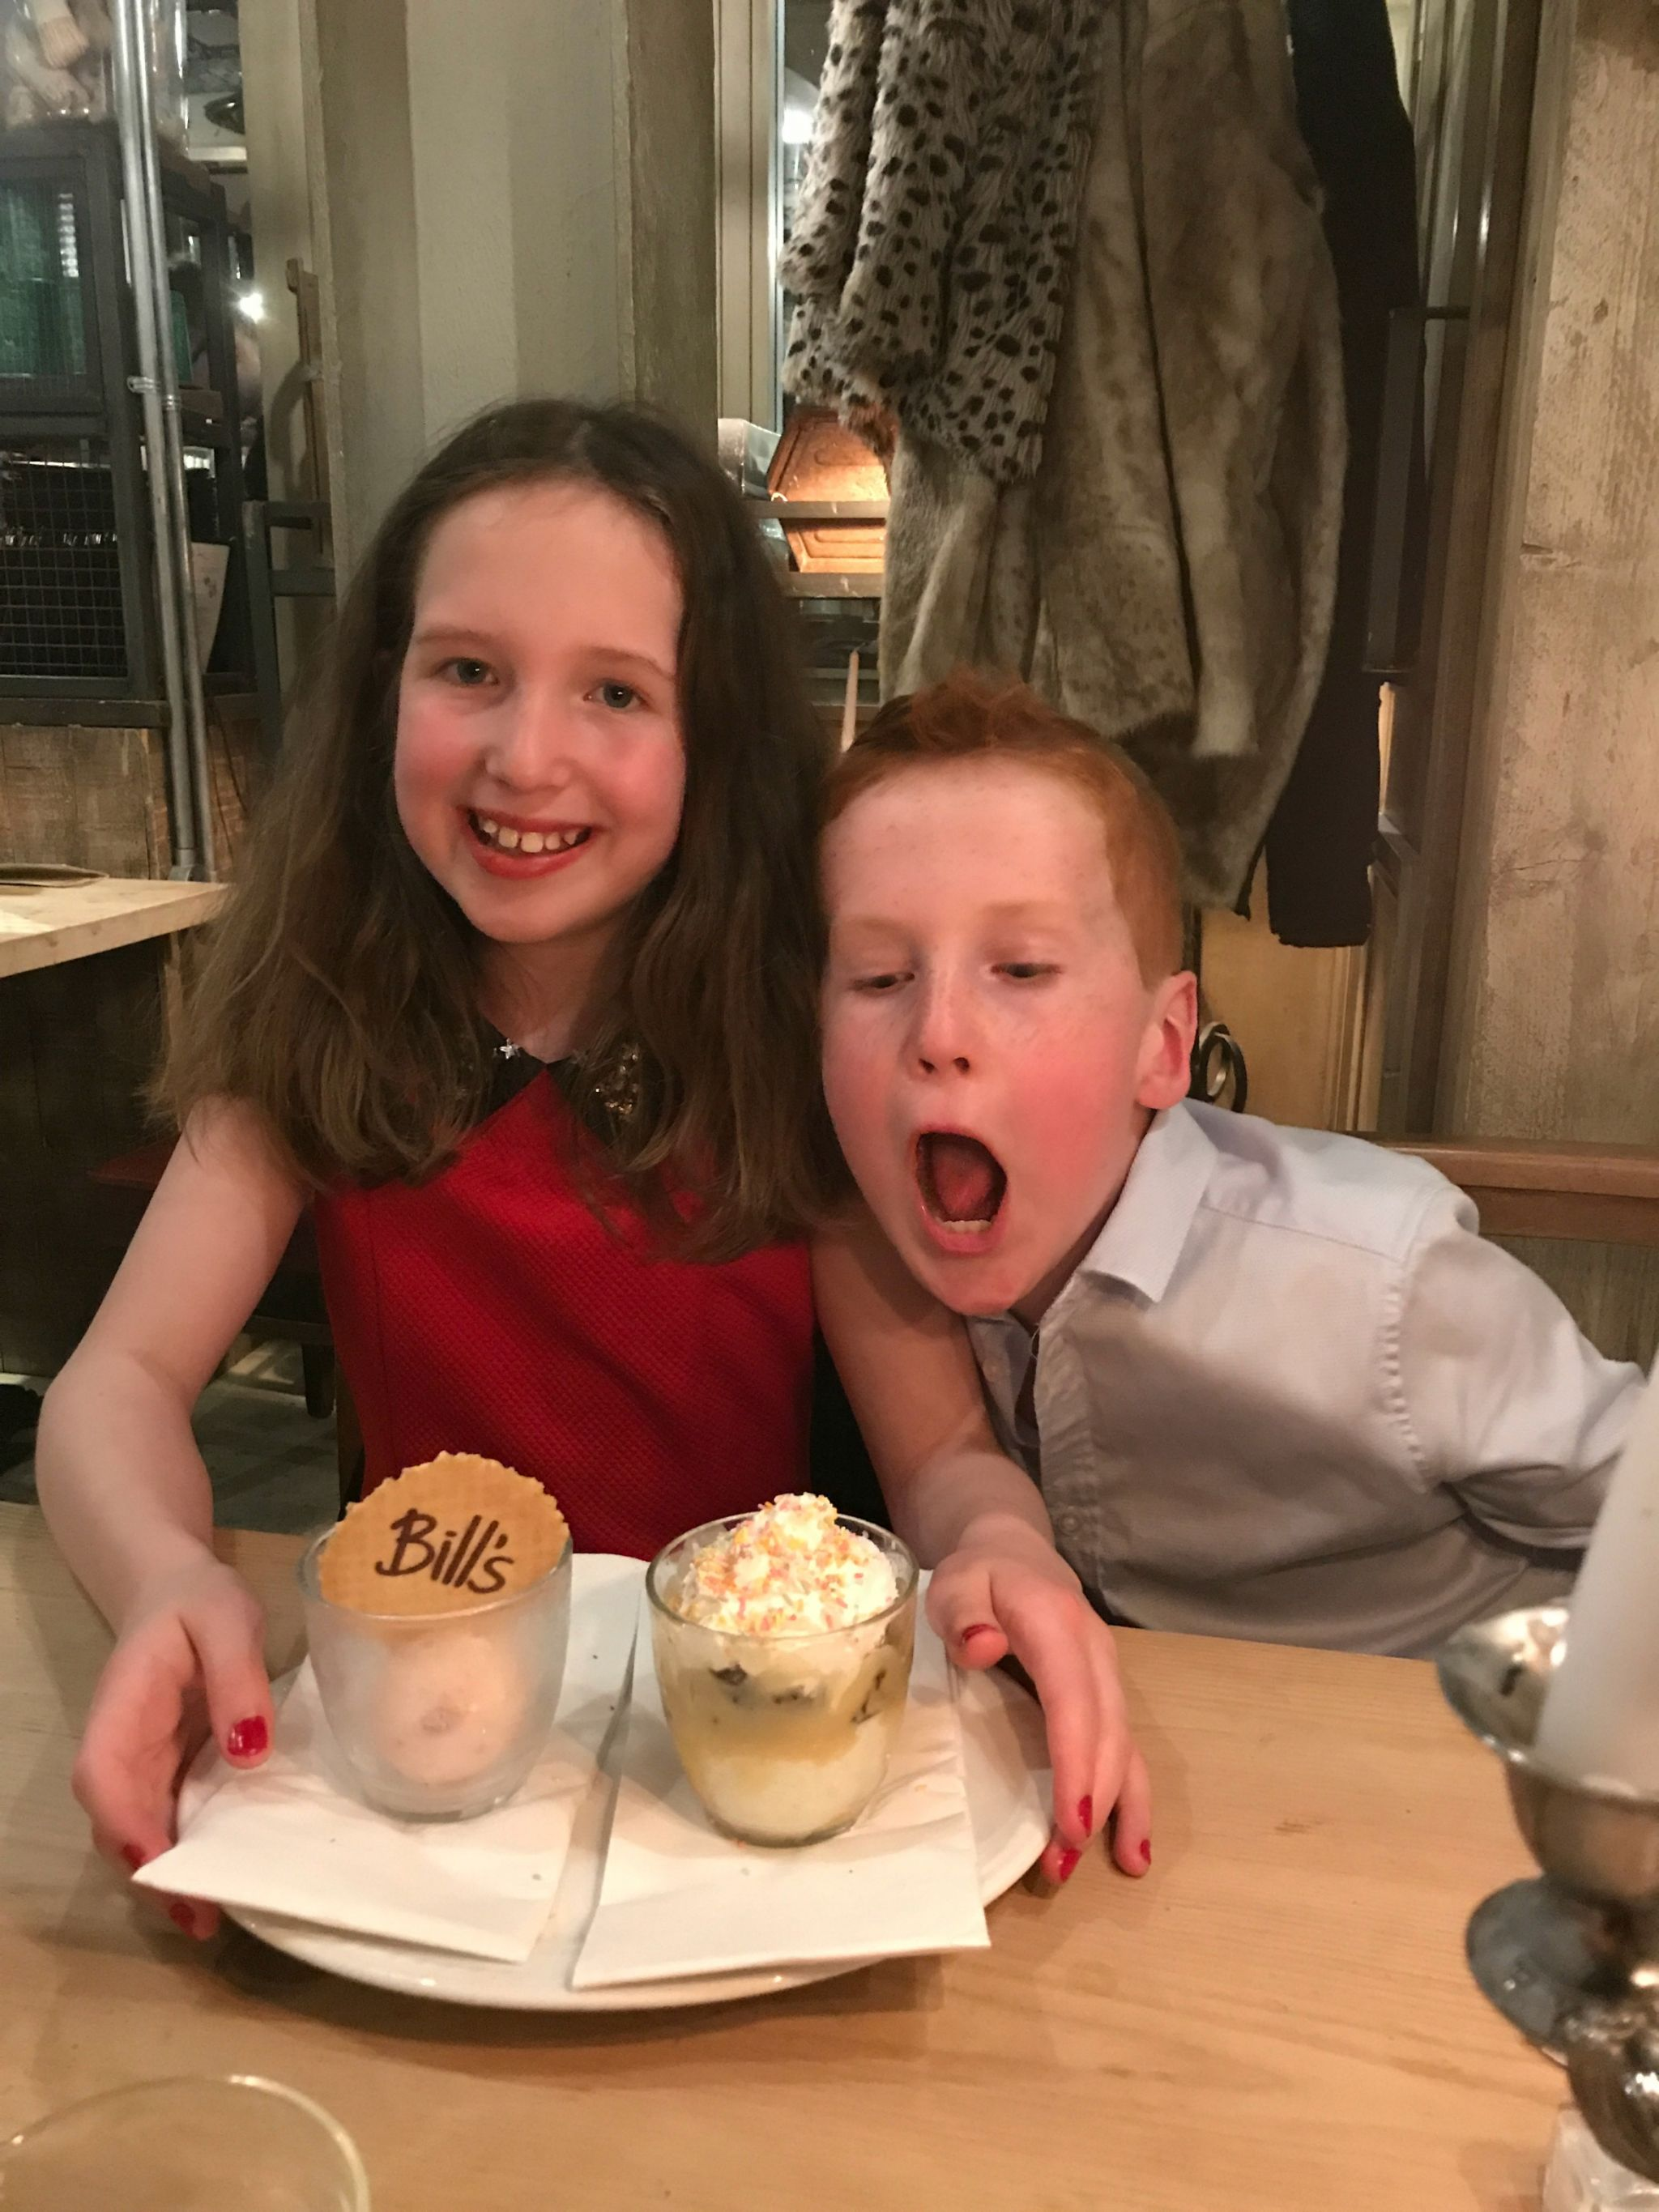 Caitlin & Ieuan with their ice creams at Bill's